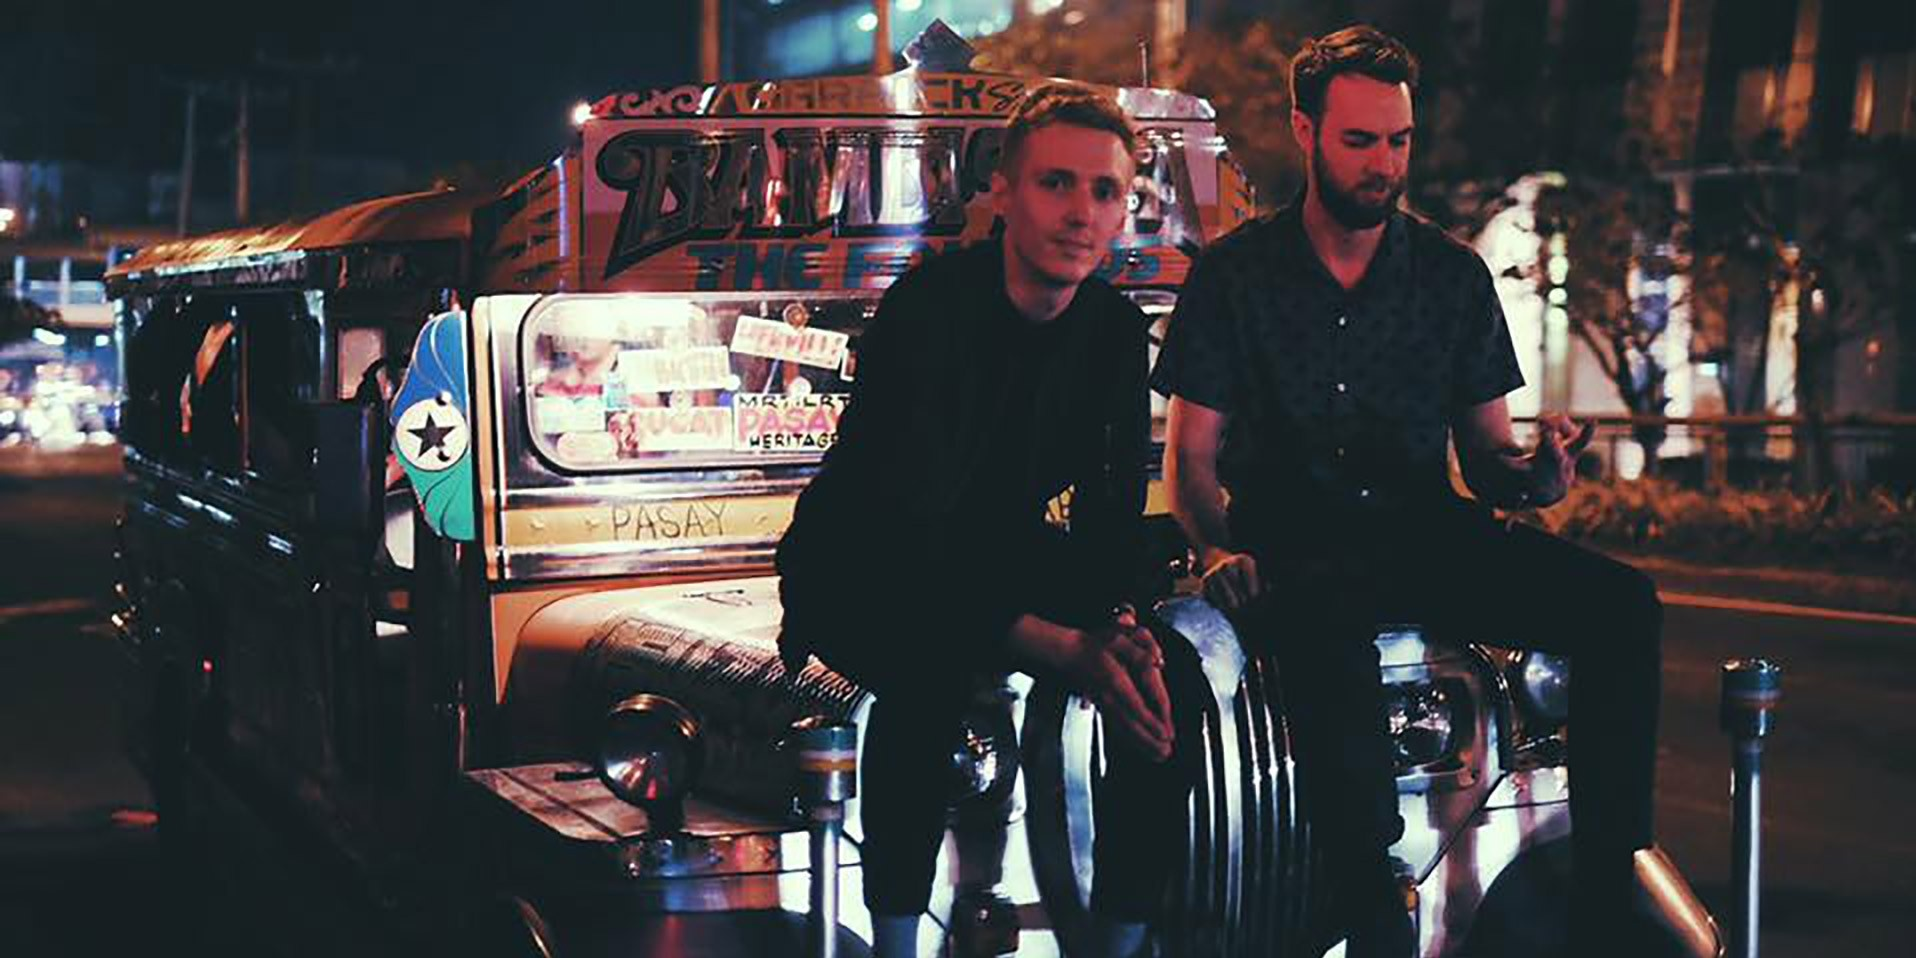 Honne to perform in Manila this July